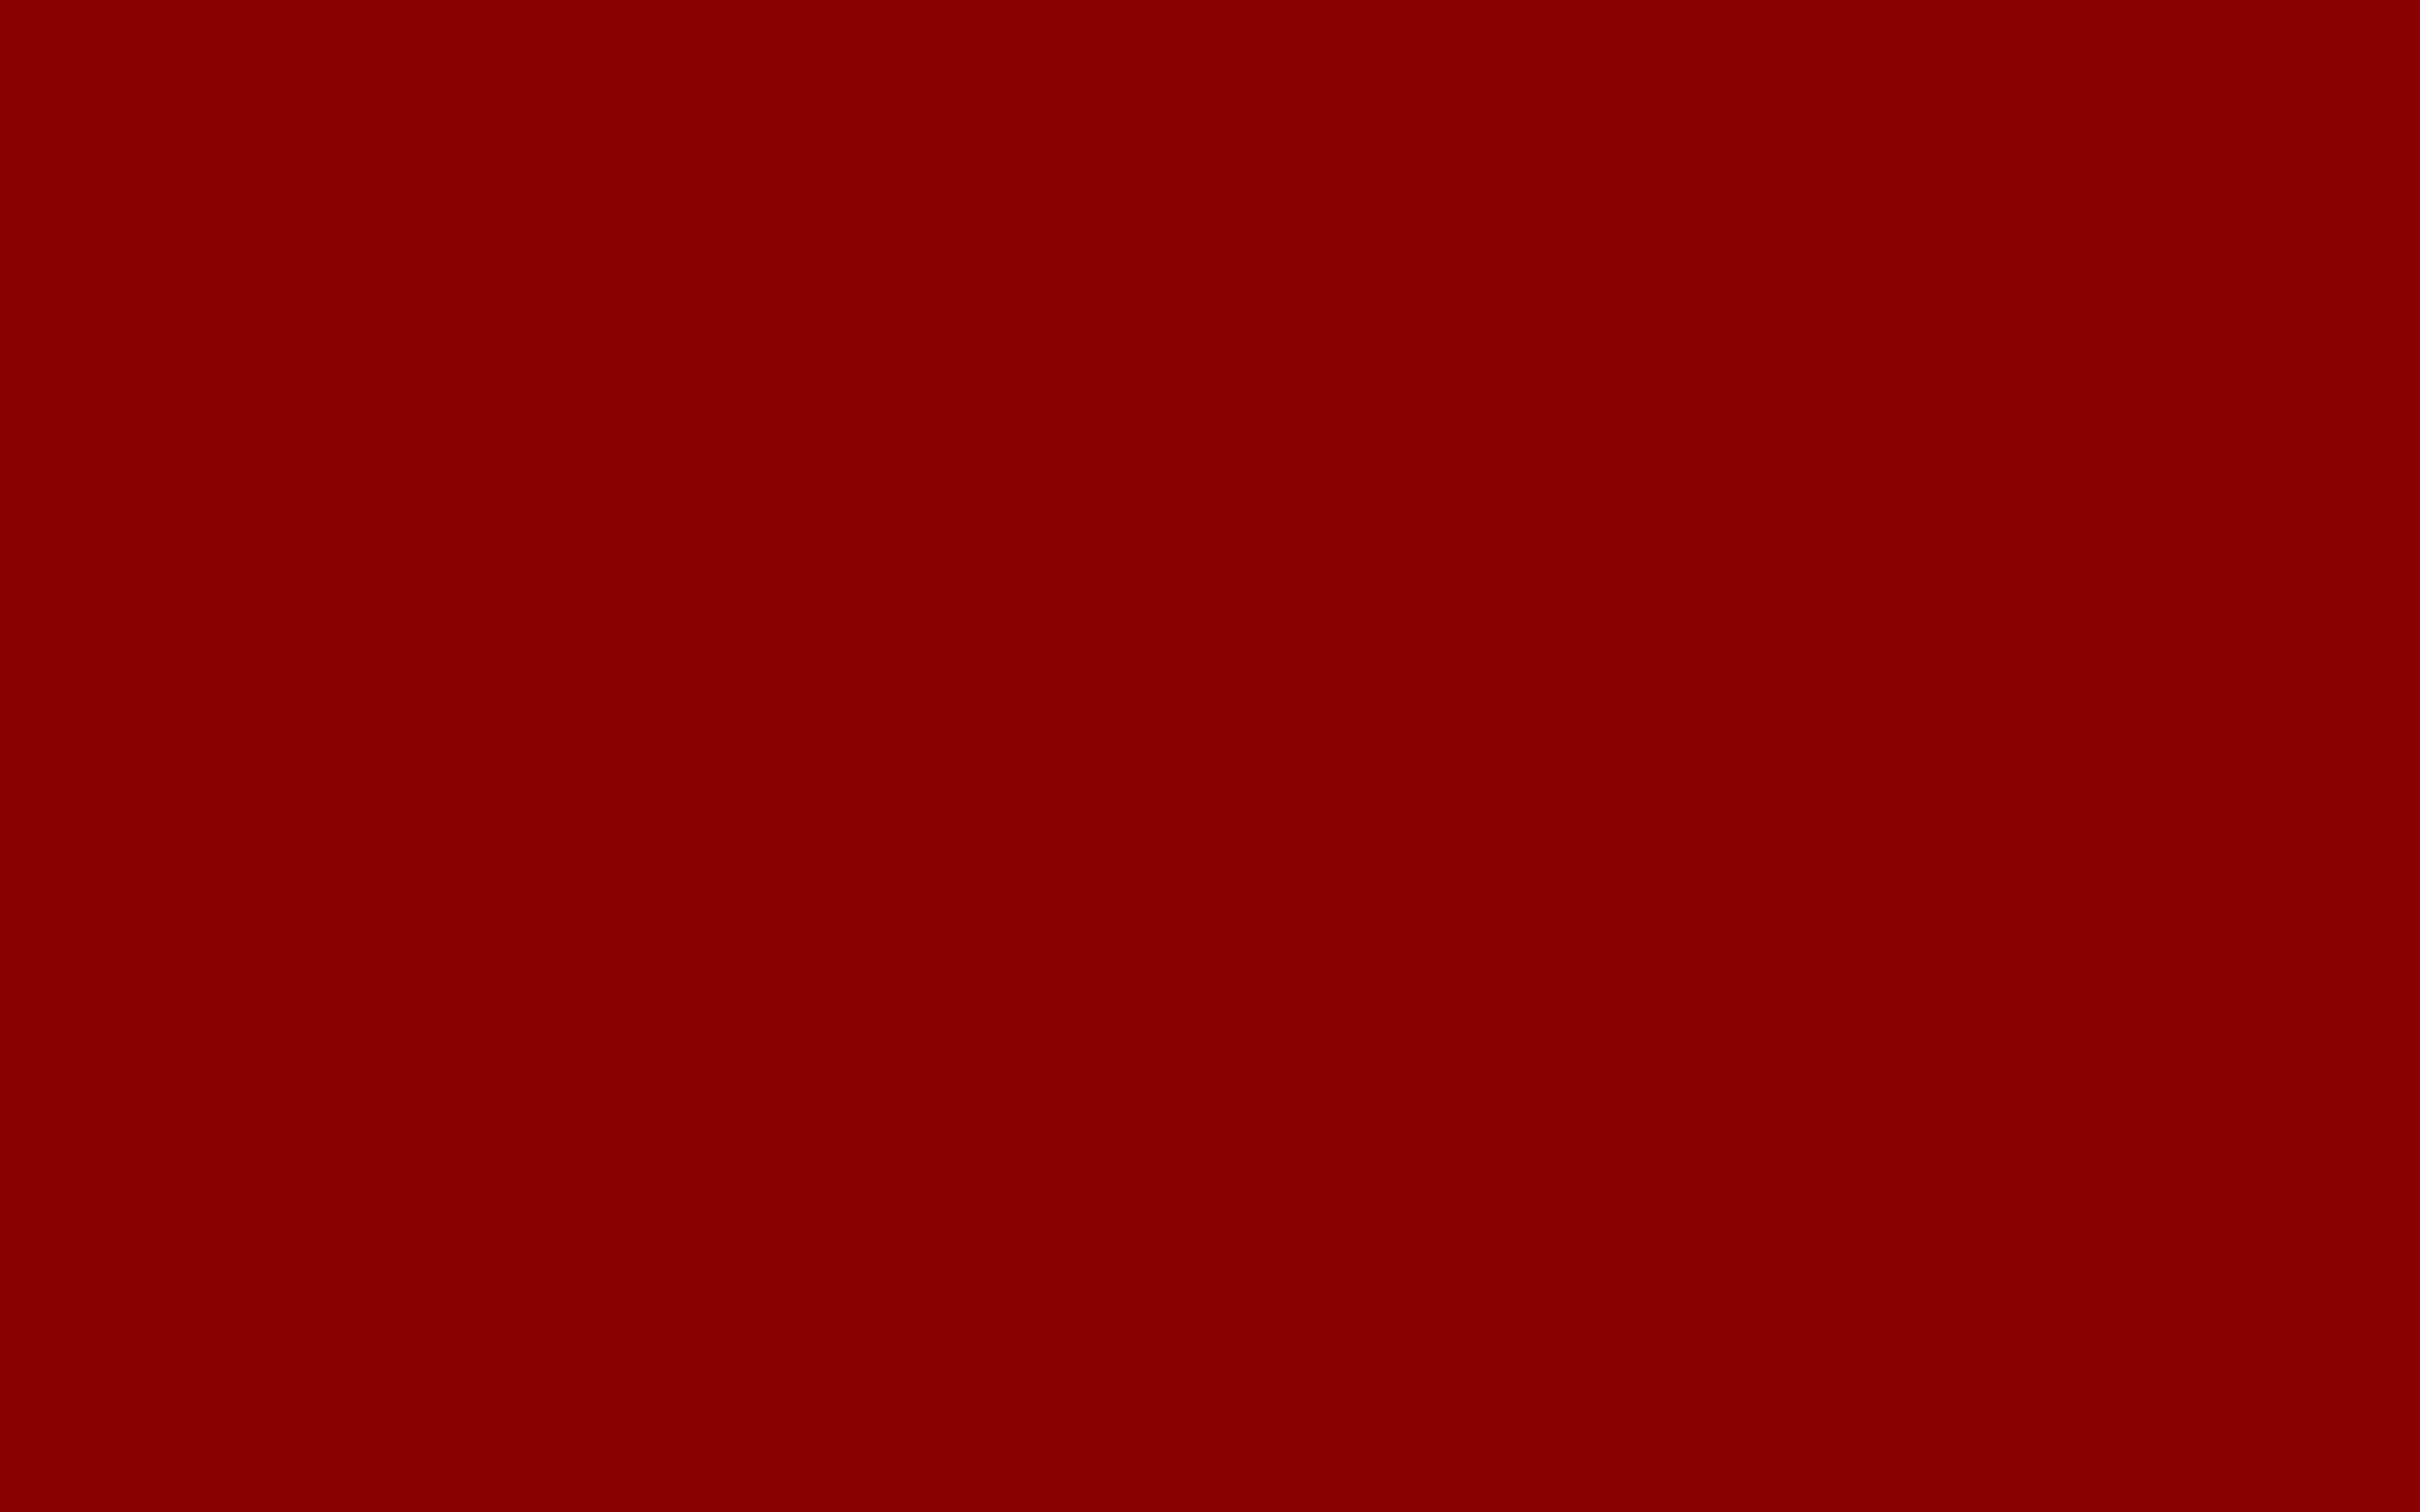 Dark Maroon Background